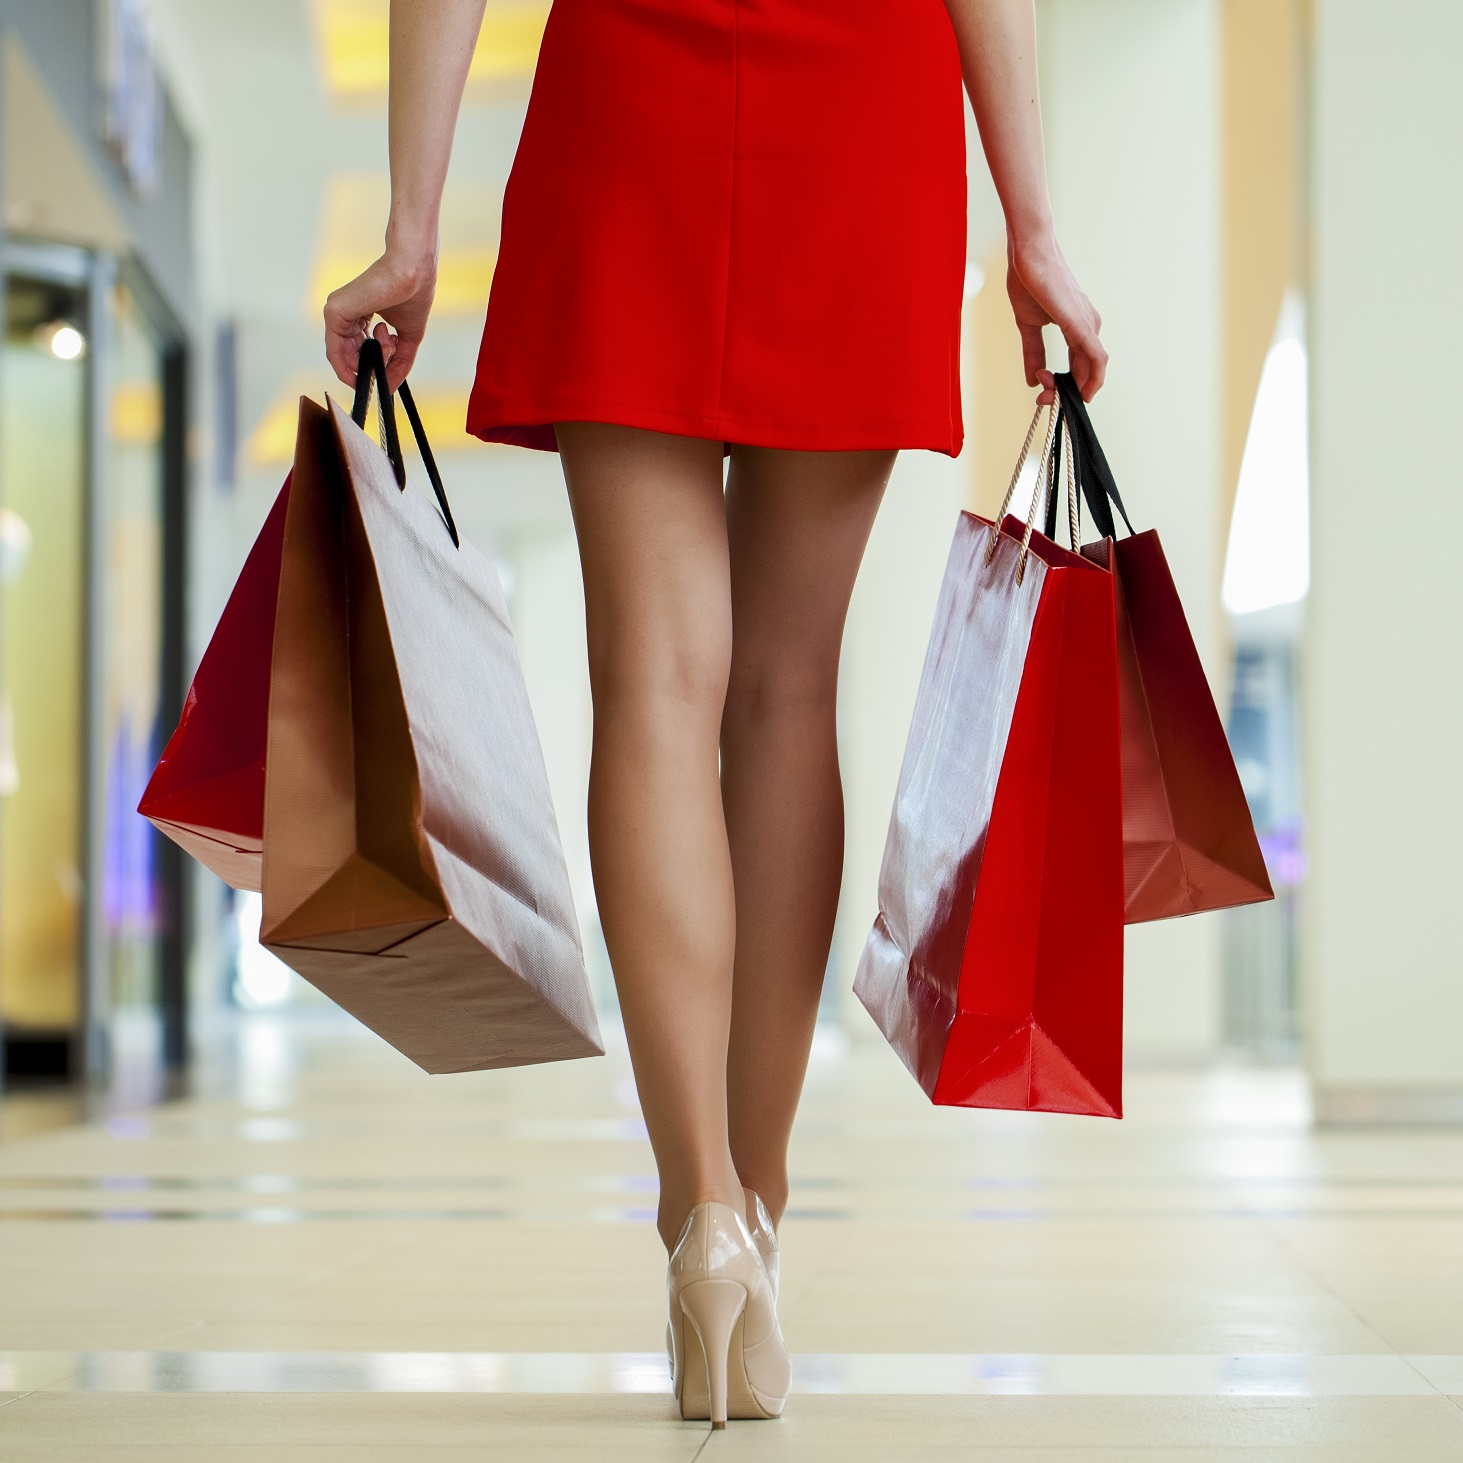 Personal shopping needs managed by our concierge team